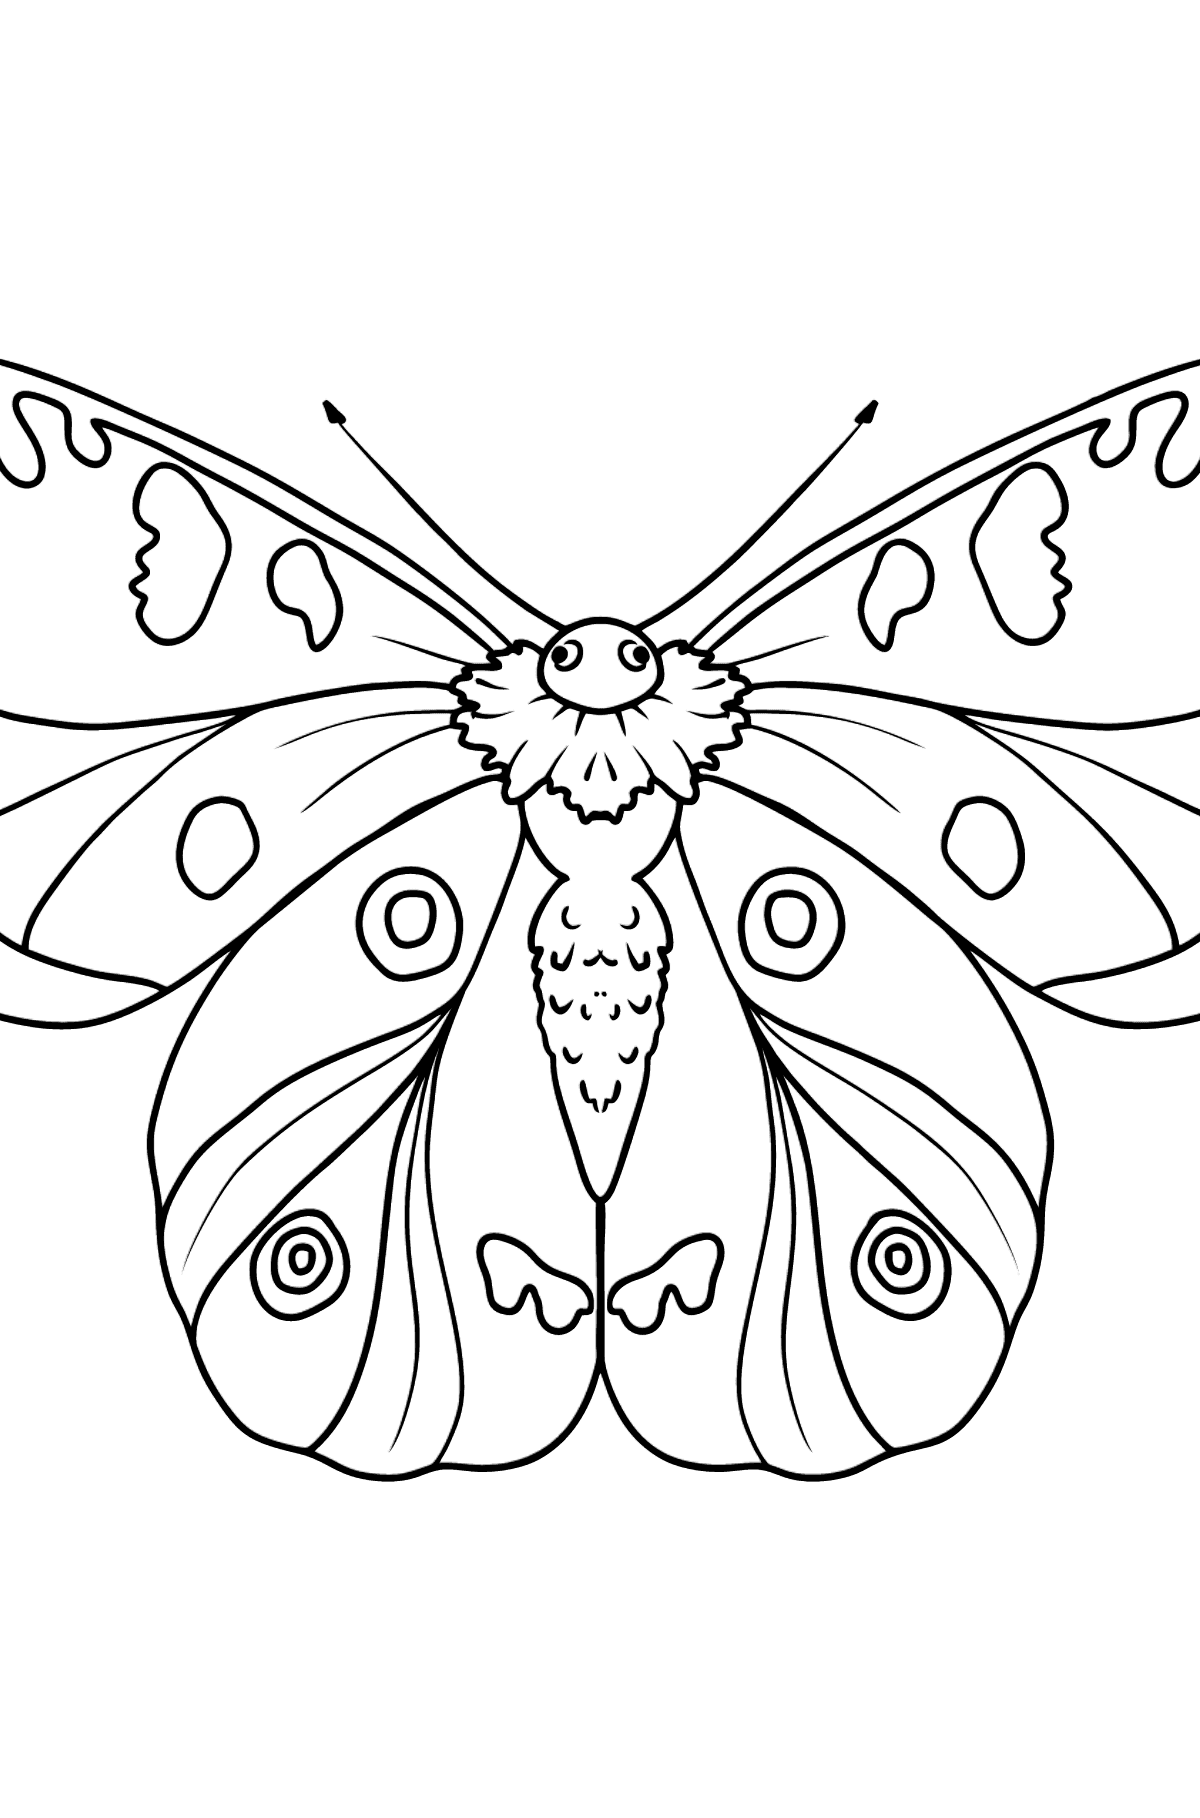 Apollo Butterfly coloring page - Coloring Pages for Kids